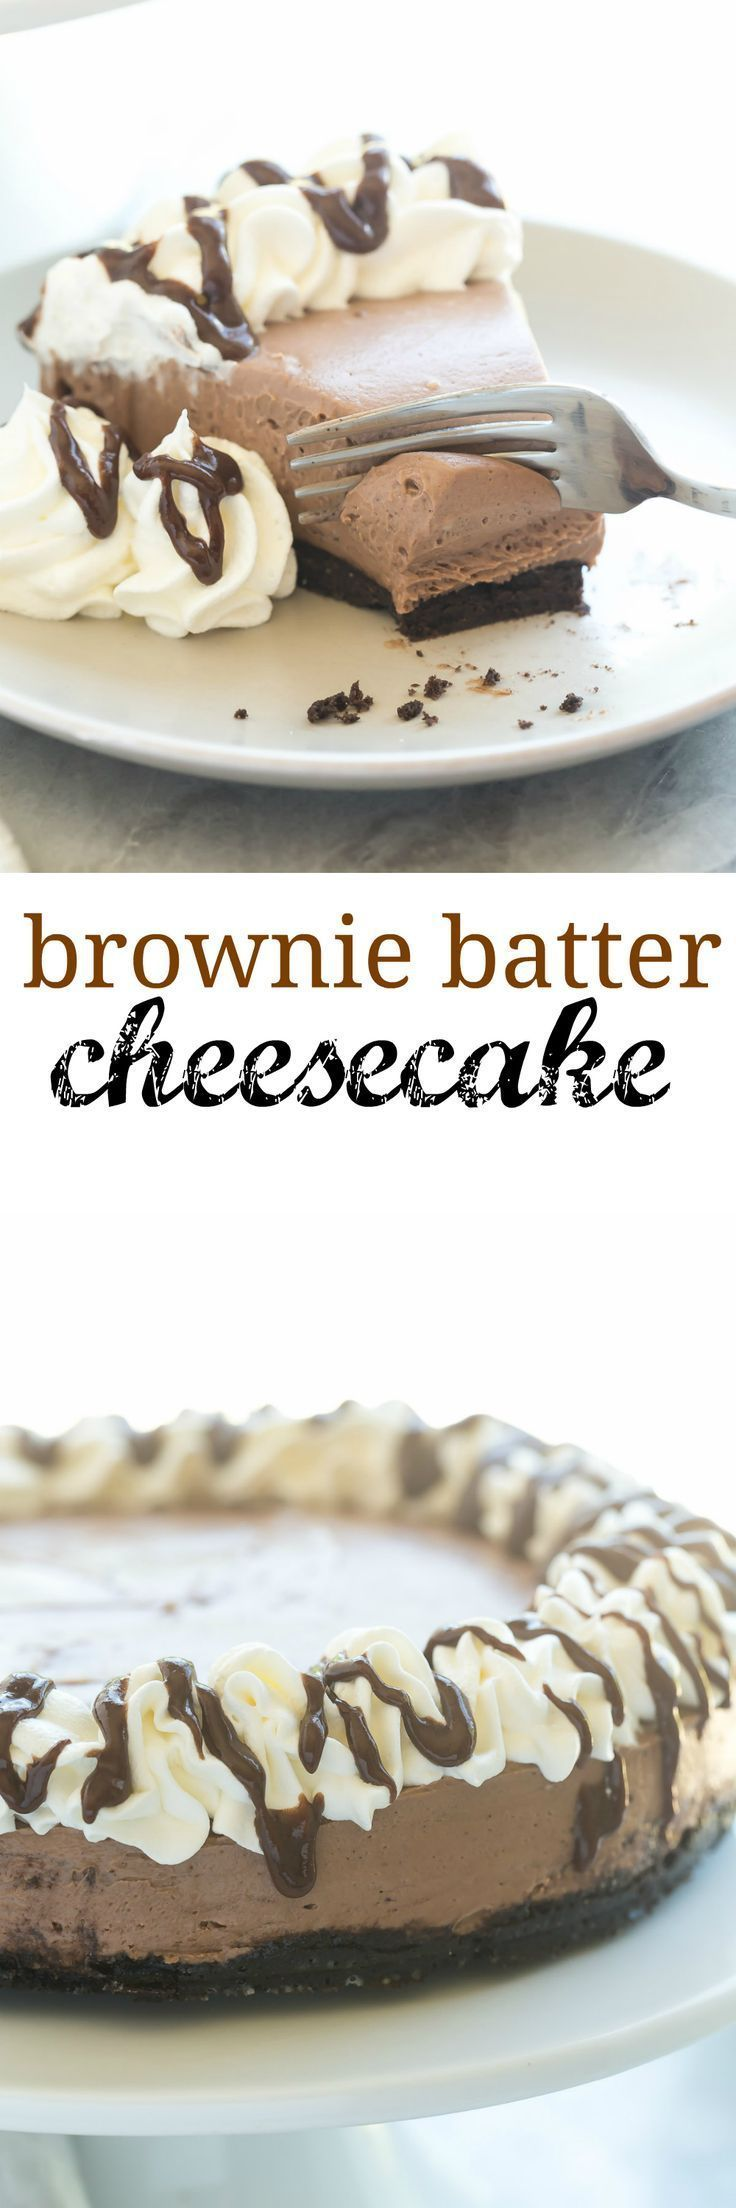 http://bestkitchenequipmentreviews.com/pressure-cooker/ This No Bake Brownie Batter Cheesecake is the cheesecake for chocolate lovers! It's rich and fudgy with no oven required! http://www.thereciperebel.com/no-bake-brownie-batter-cheesecake/